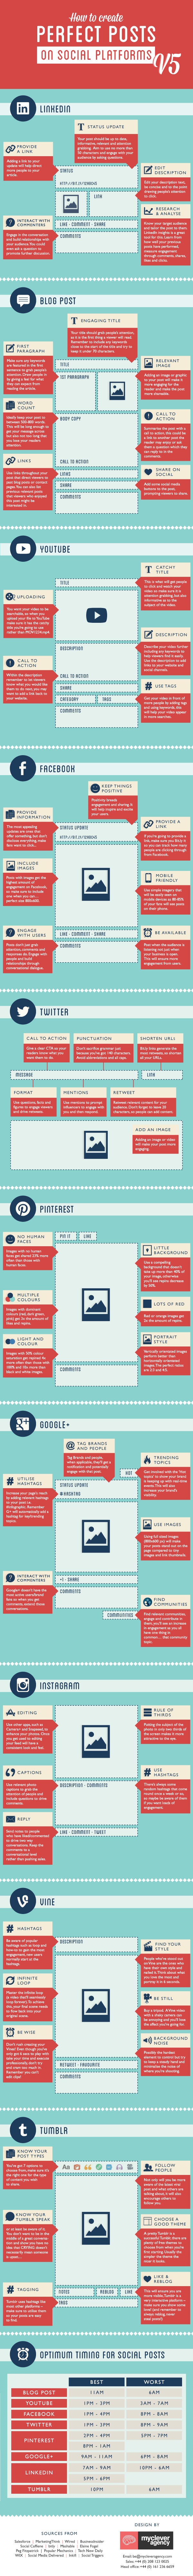 How to Create the Perfect Social Media Post